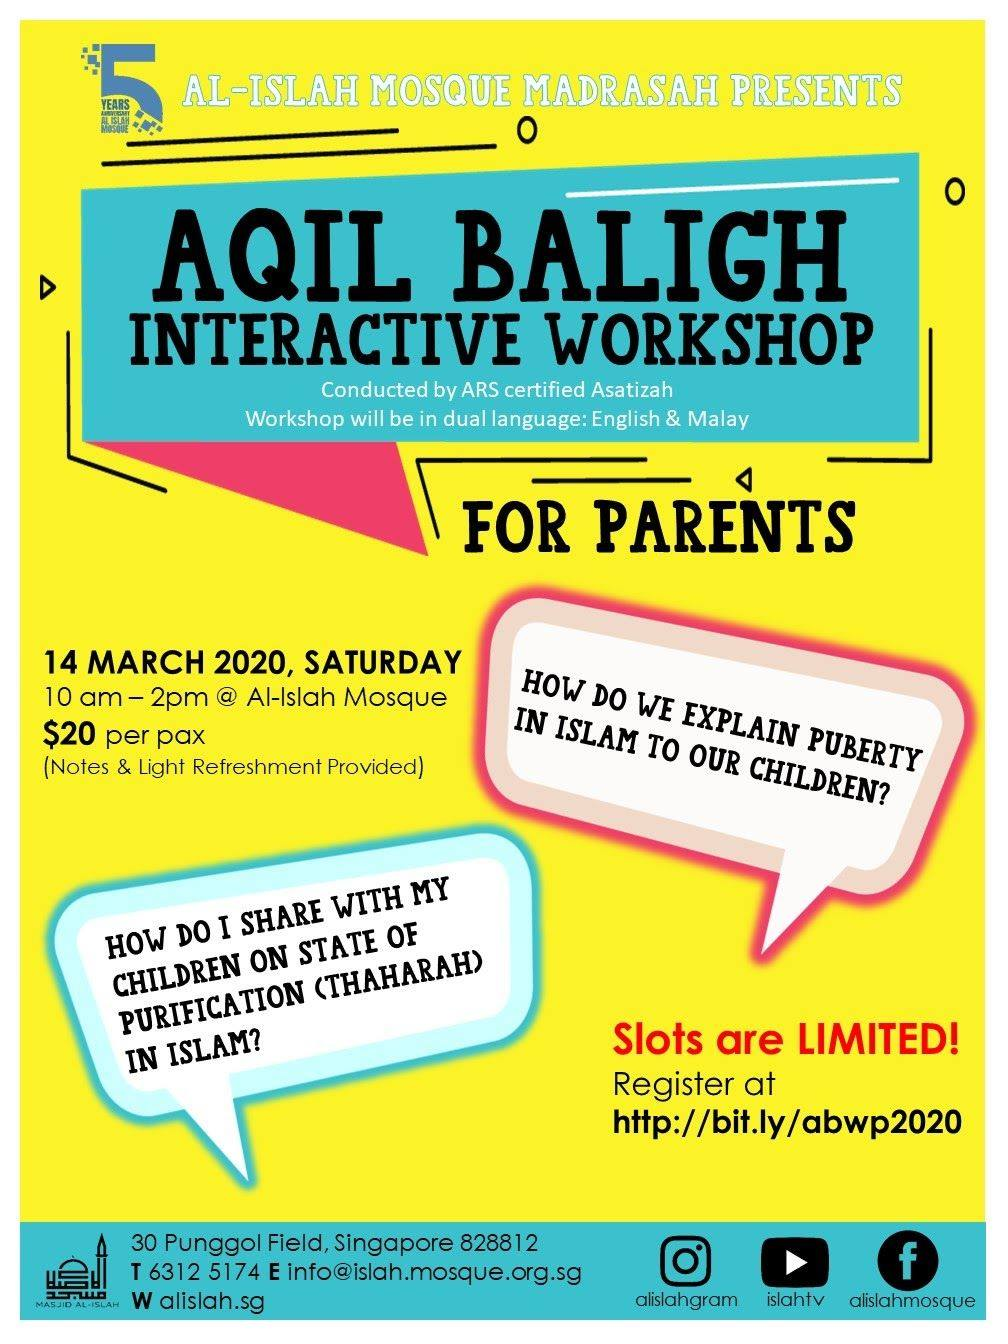 WORKSHOP FOR PARENTS AQIL BALIGH - AN INTERACTIVE WORKSHOP FOR PARENTS!